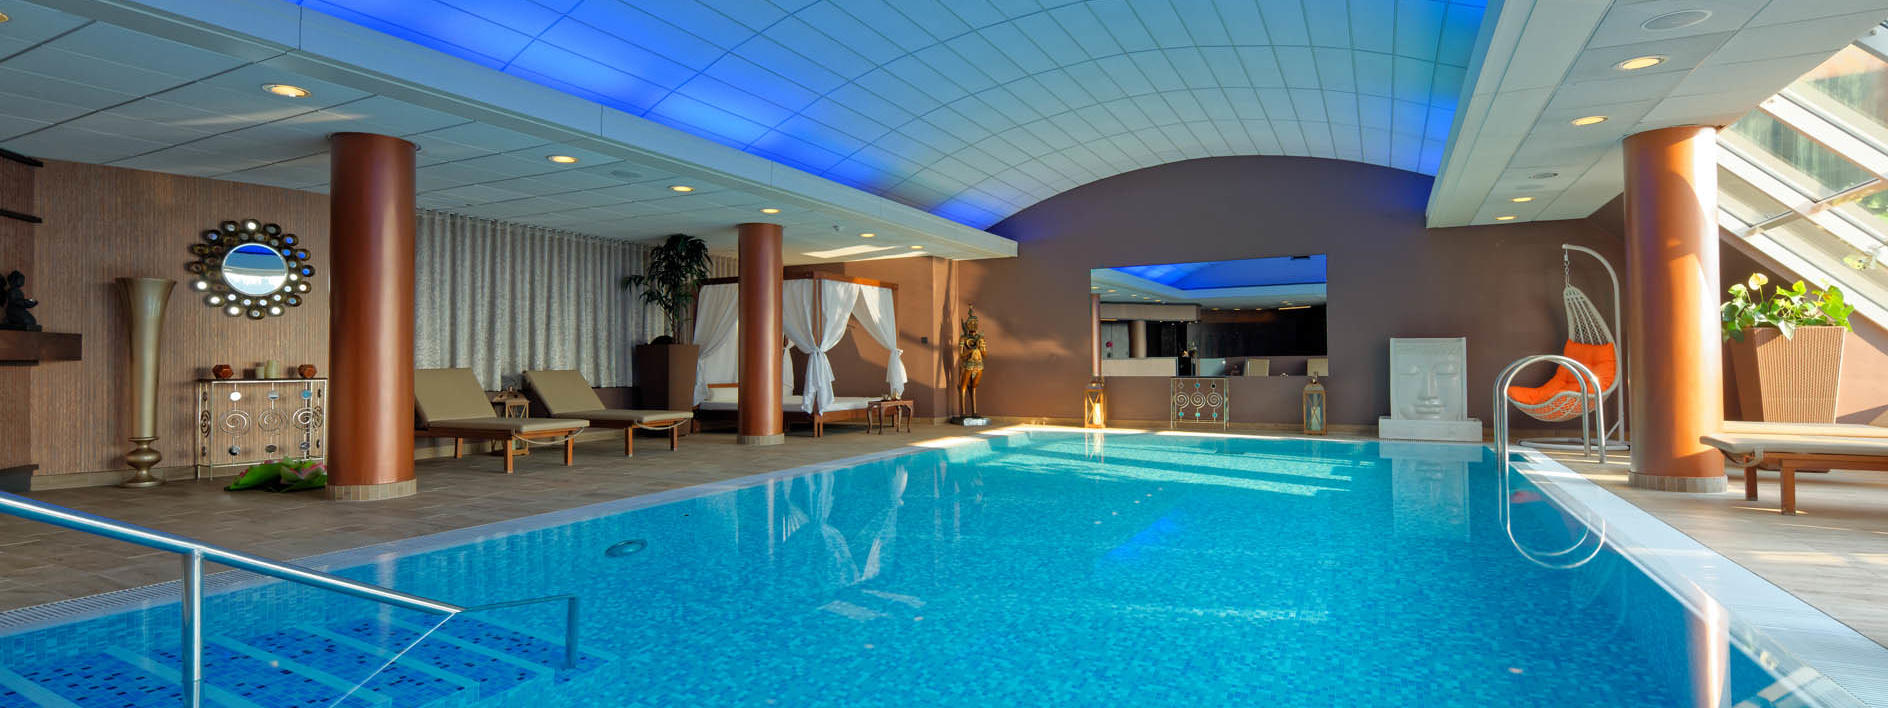 Wellness at UHotel in Ljubljana